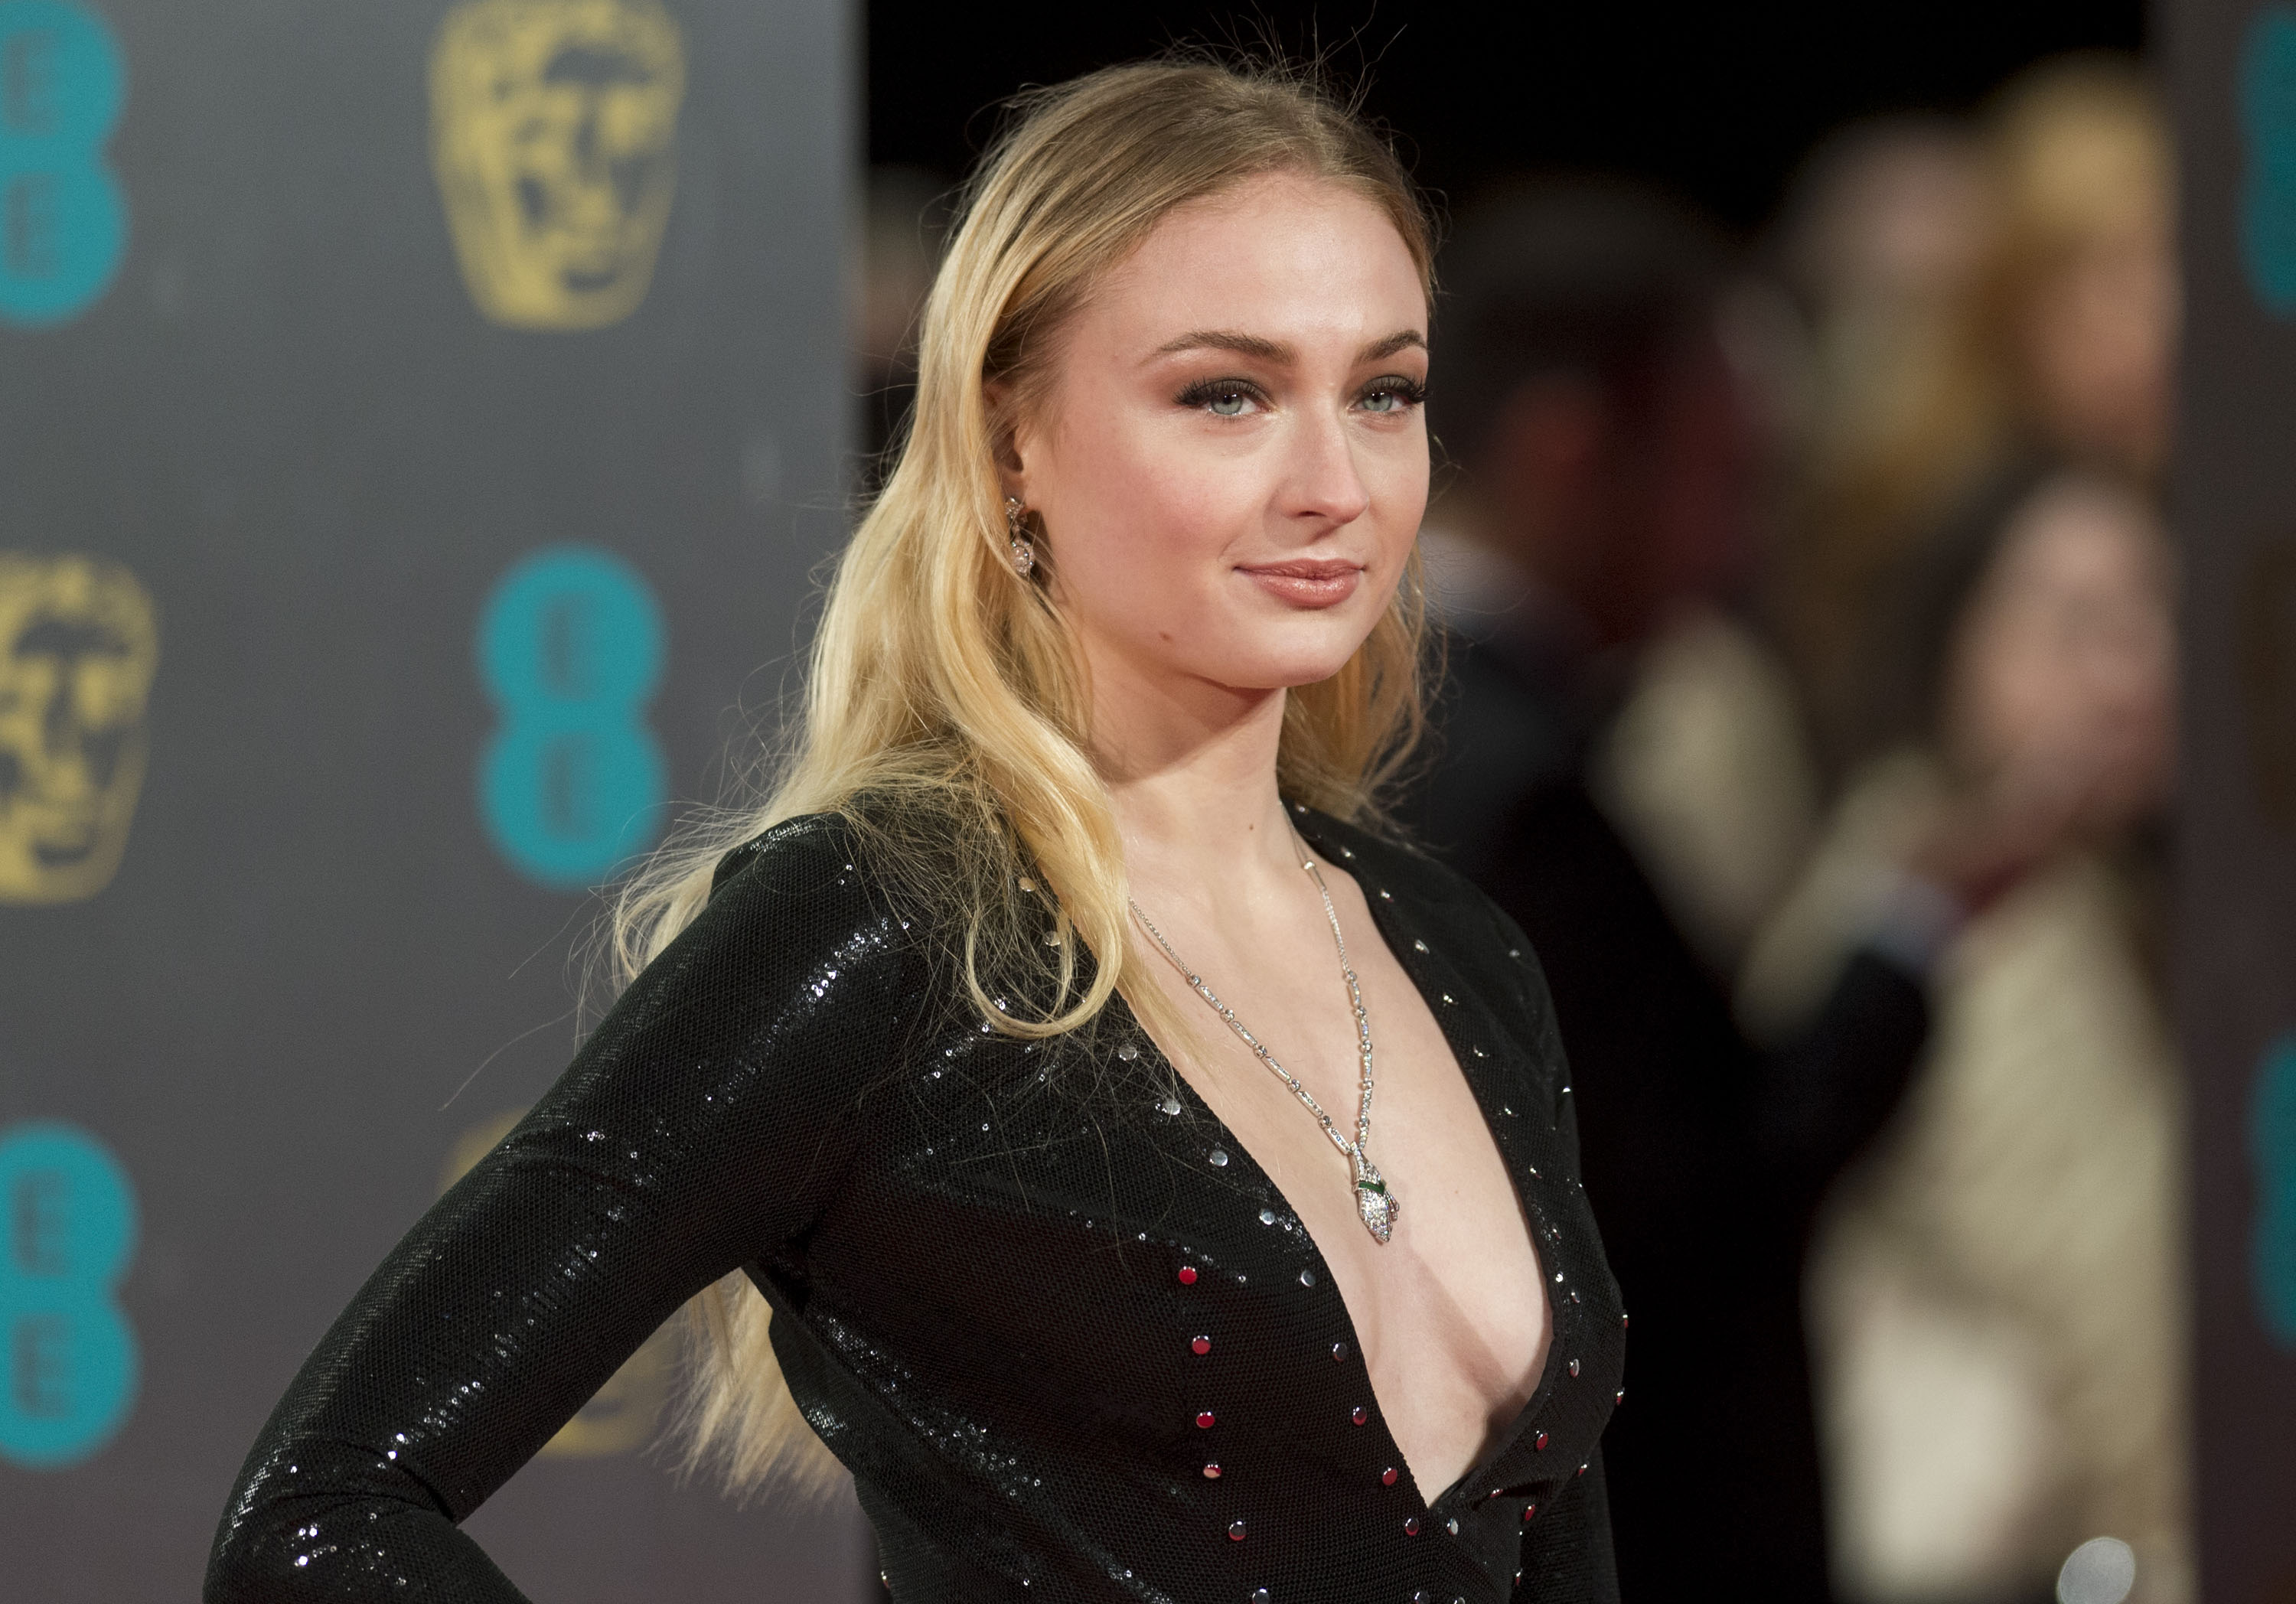 Sophie Turner refuses to do bikini scenes after battling with weight: 'It's not good for my mental health'